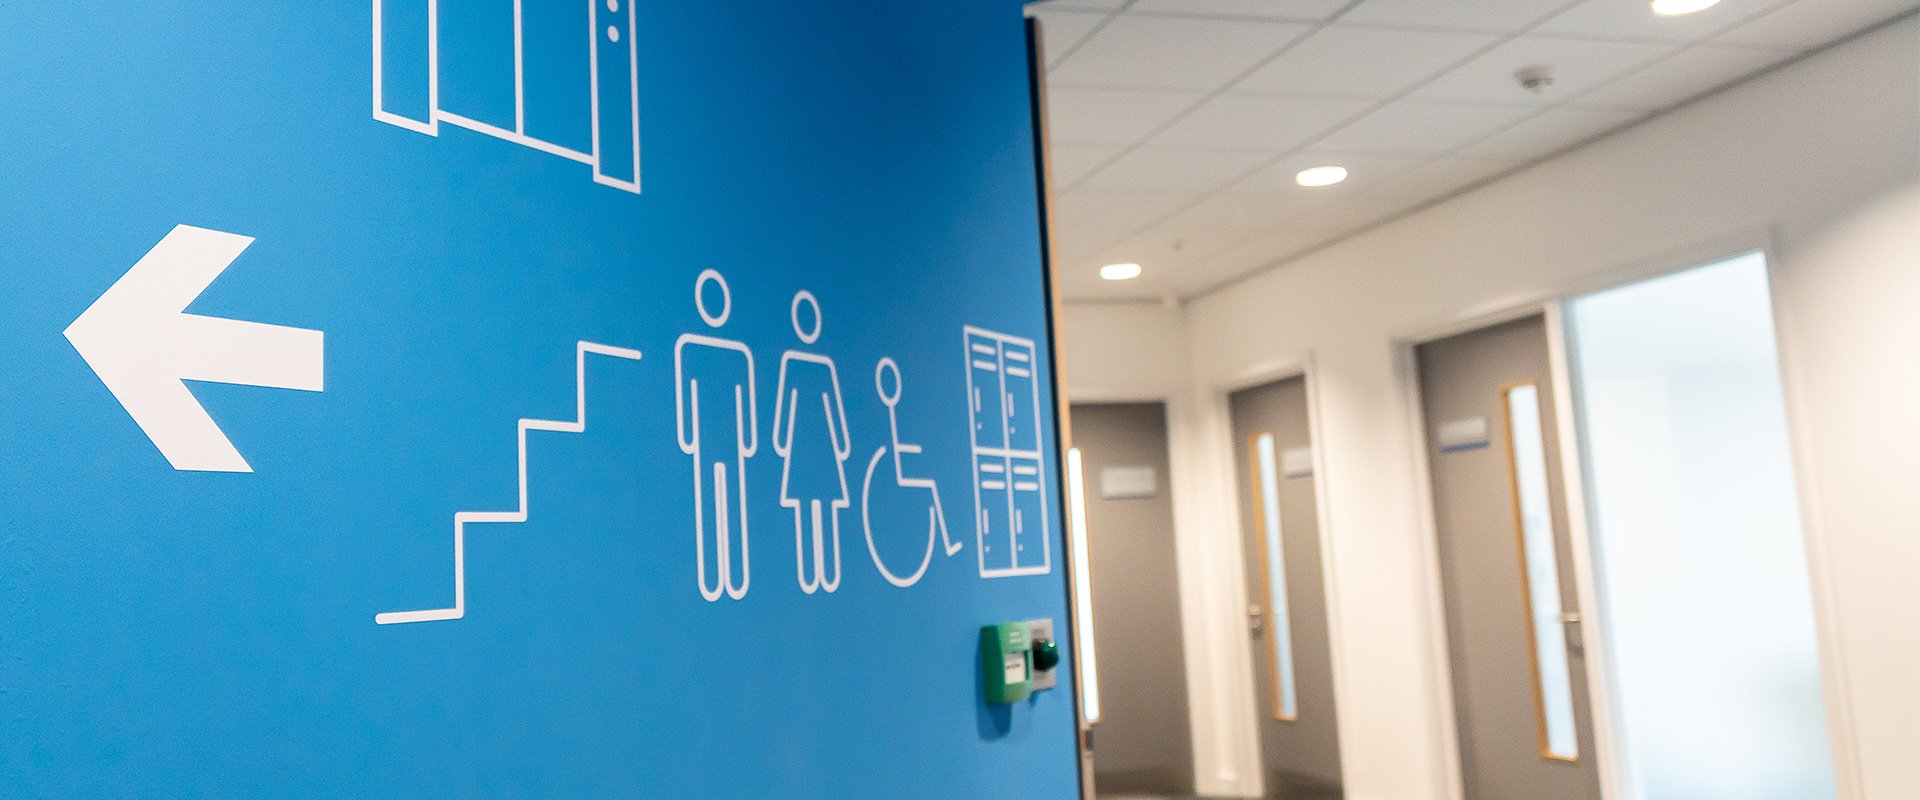 Wayfinding vinyl wall graphics